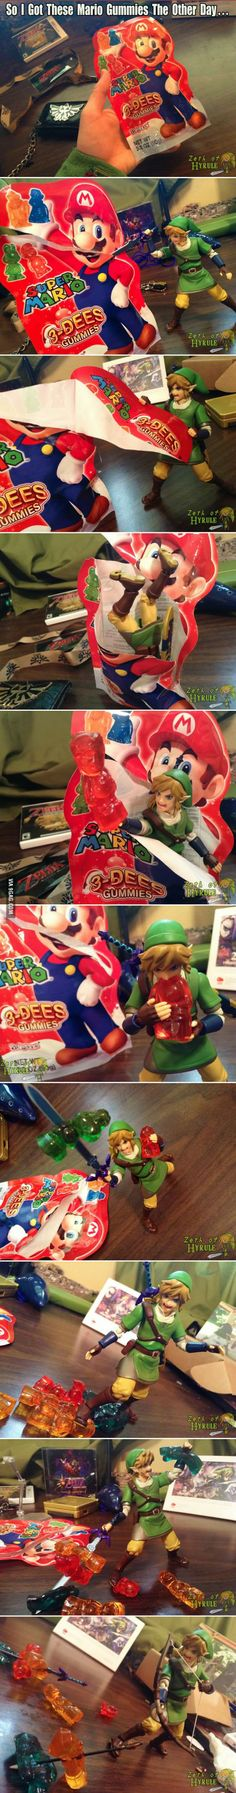 Link and Mario with gummy bears